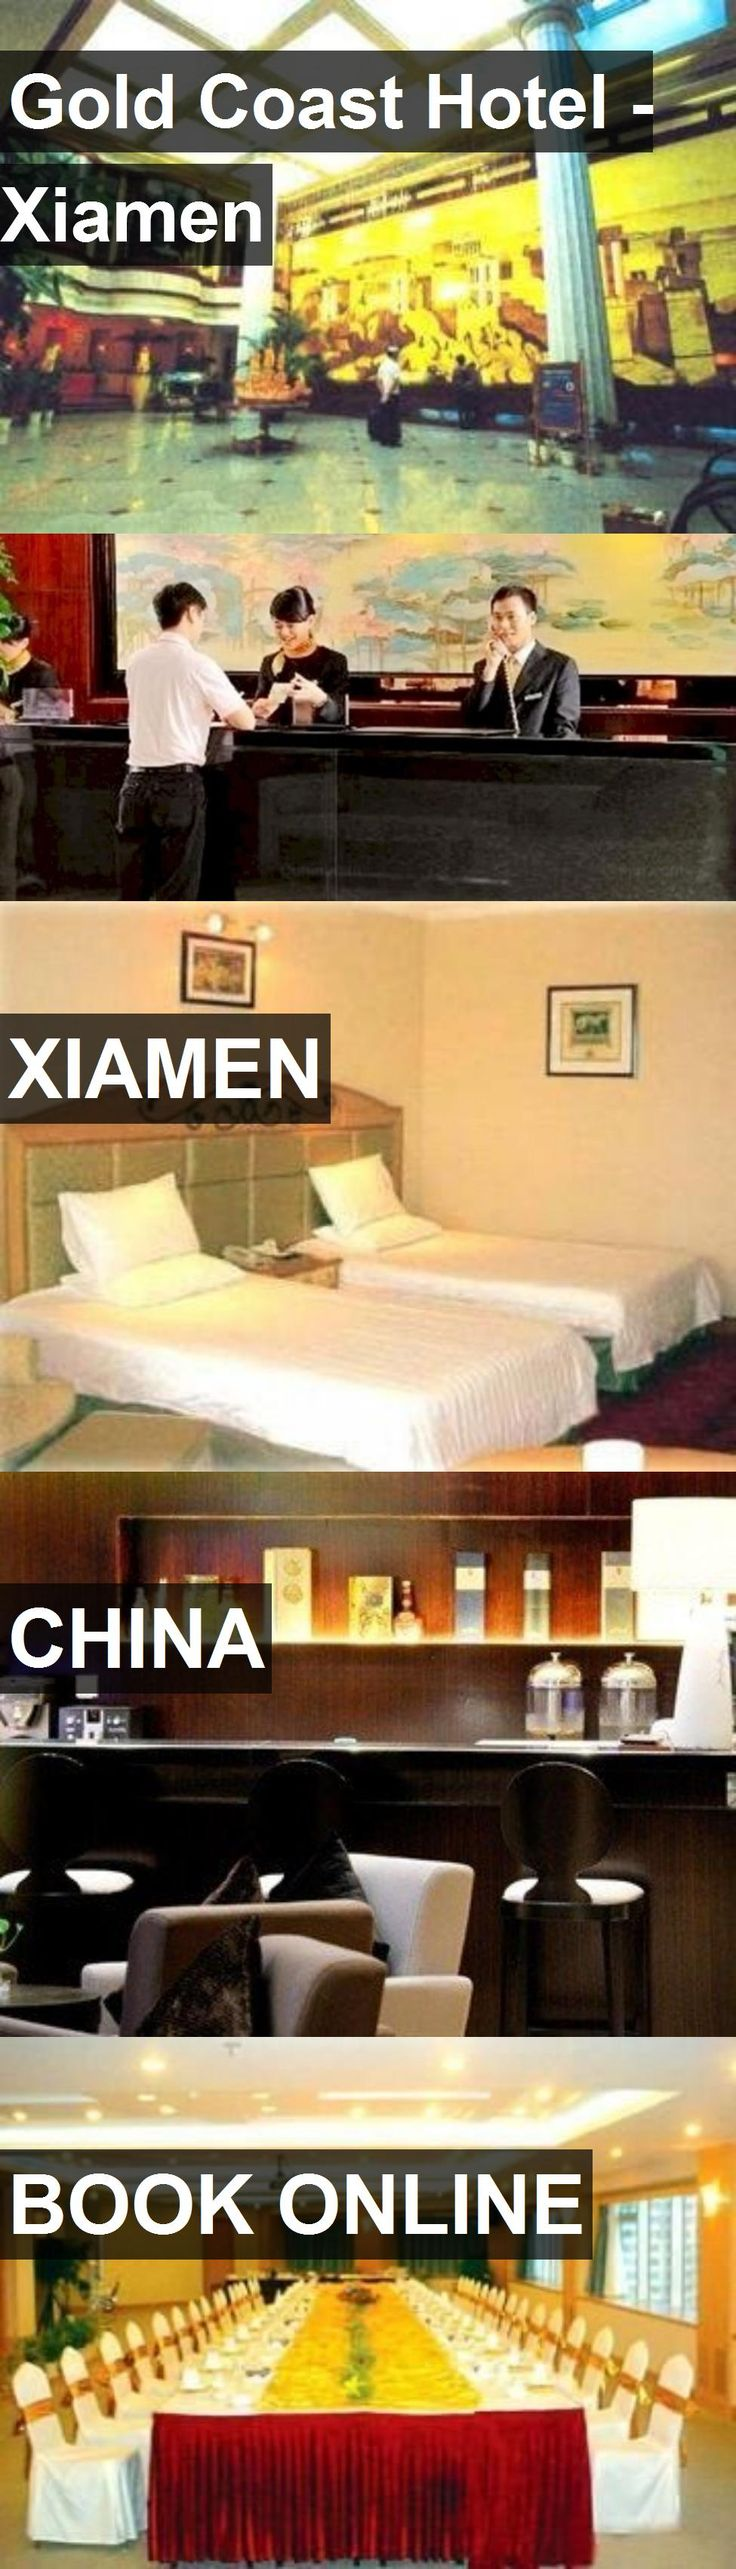 Hotel Gold Coast Hotel - Xiamen in Xiamen, China. For more information, photos, reviews and best prices please follow the link. #China #Xiamen #GoldCoastHotel-Xiamen #hotel #travel #vacation